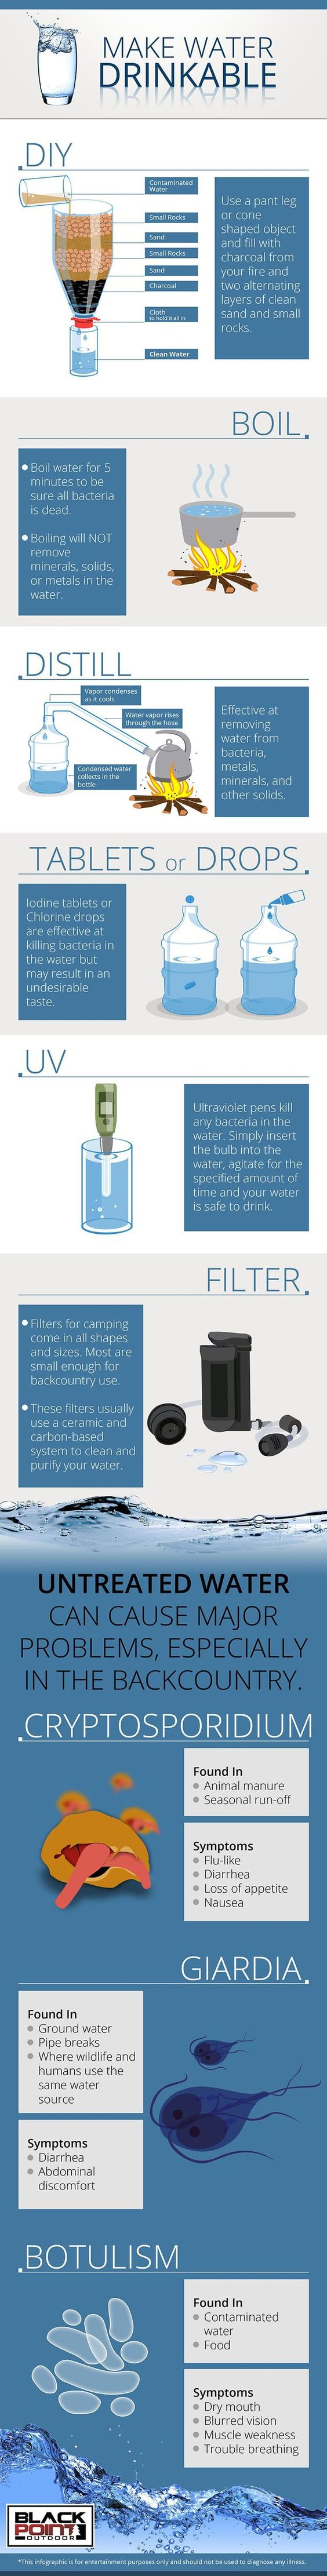 Make Water Drinkable   Why and How to Purify Water   Survival Skills, Tips And Tricks by Survival Life at http://survivallife.com/2016/01/19/make-water-drinkable/